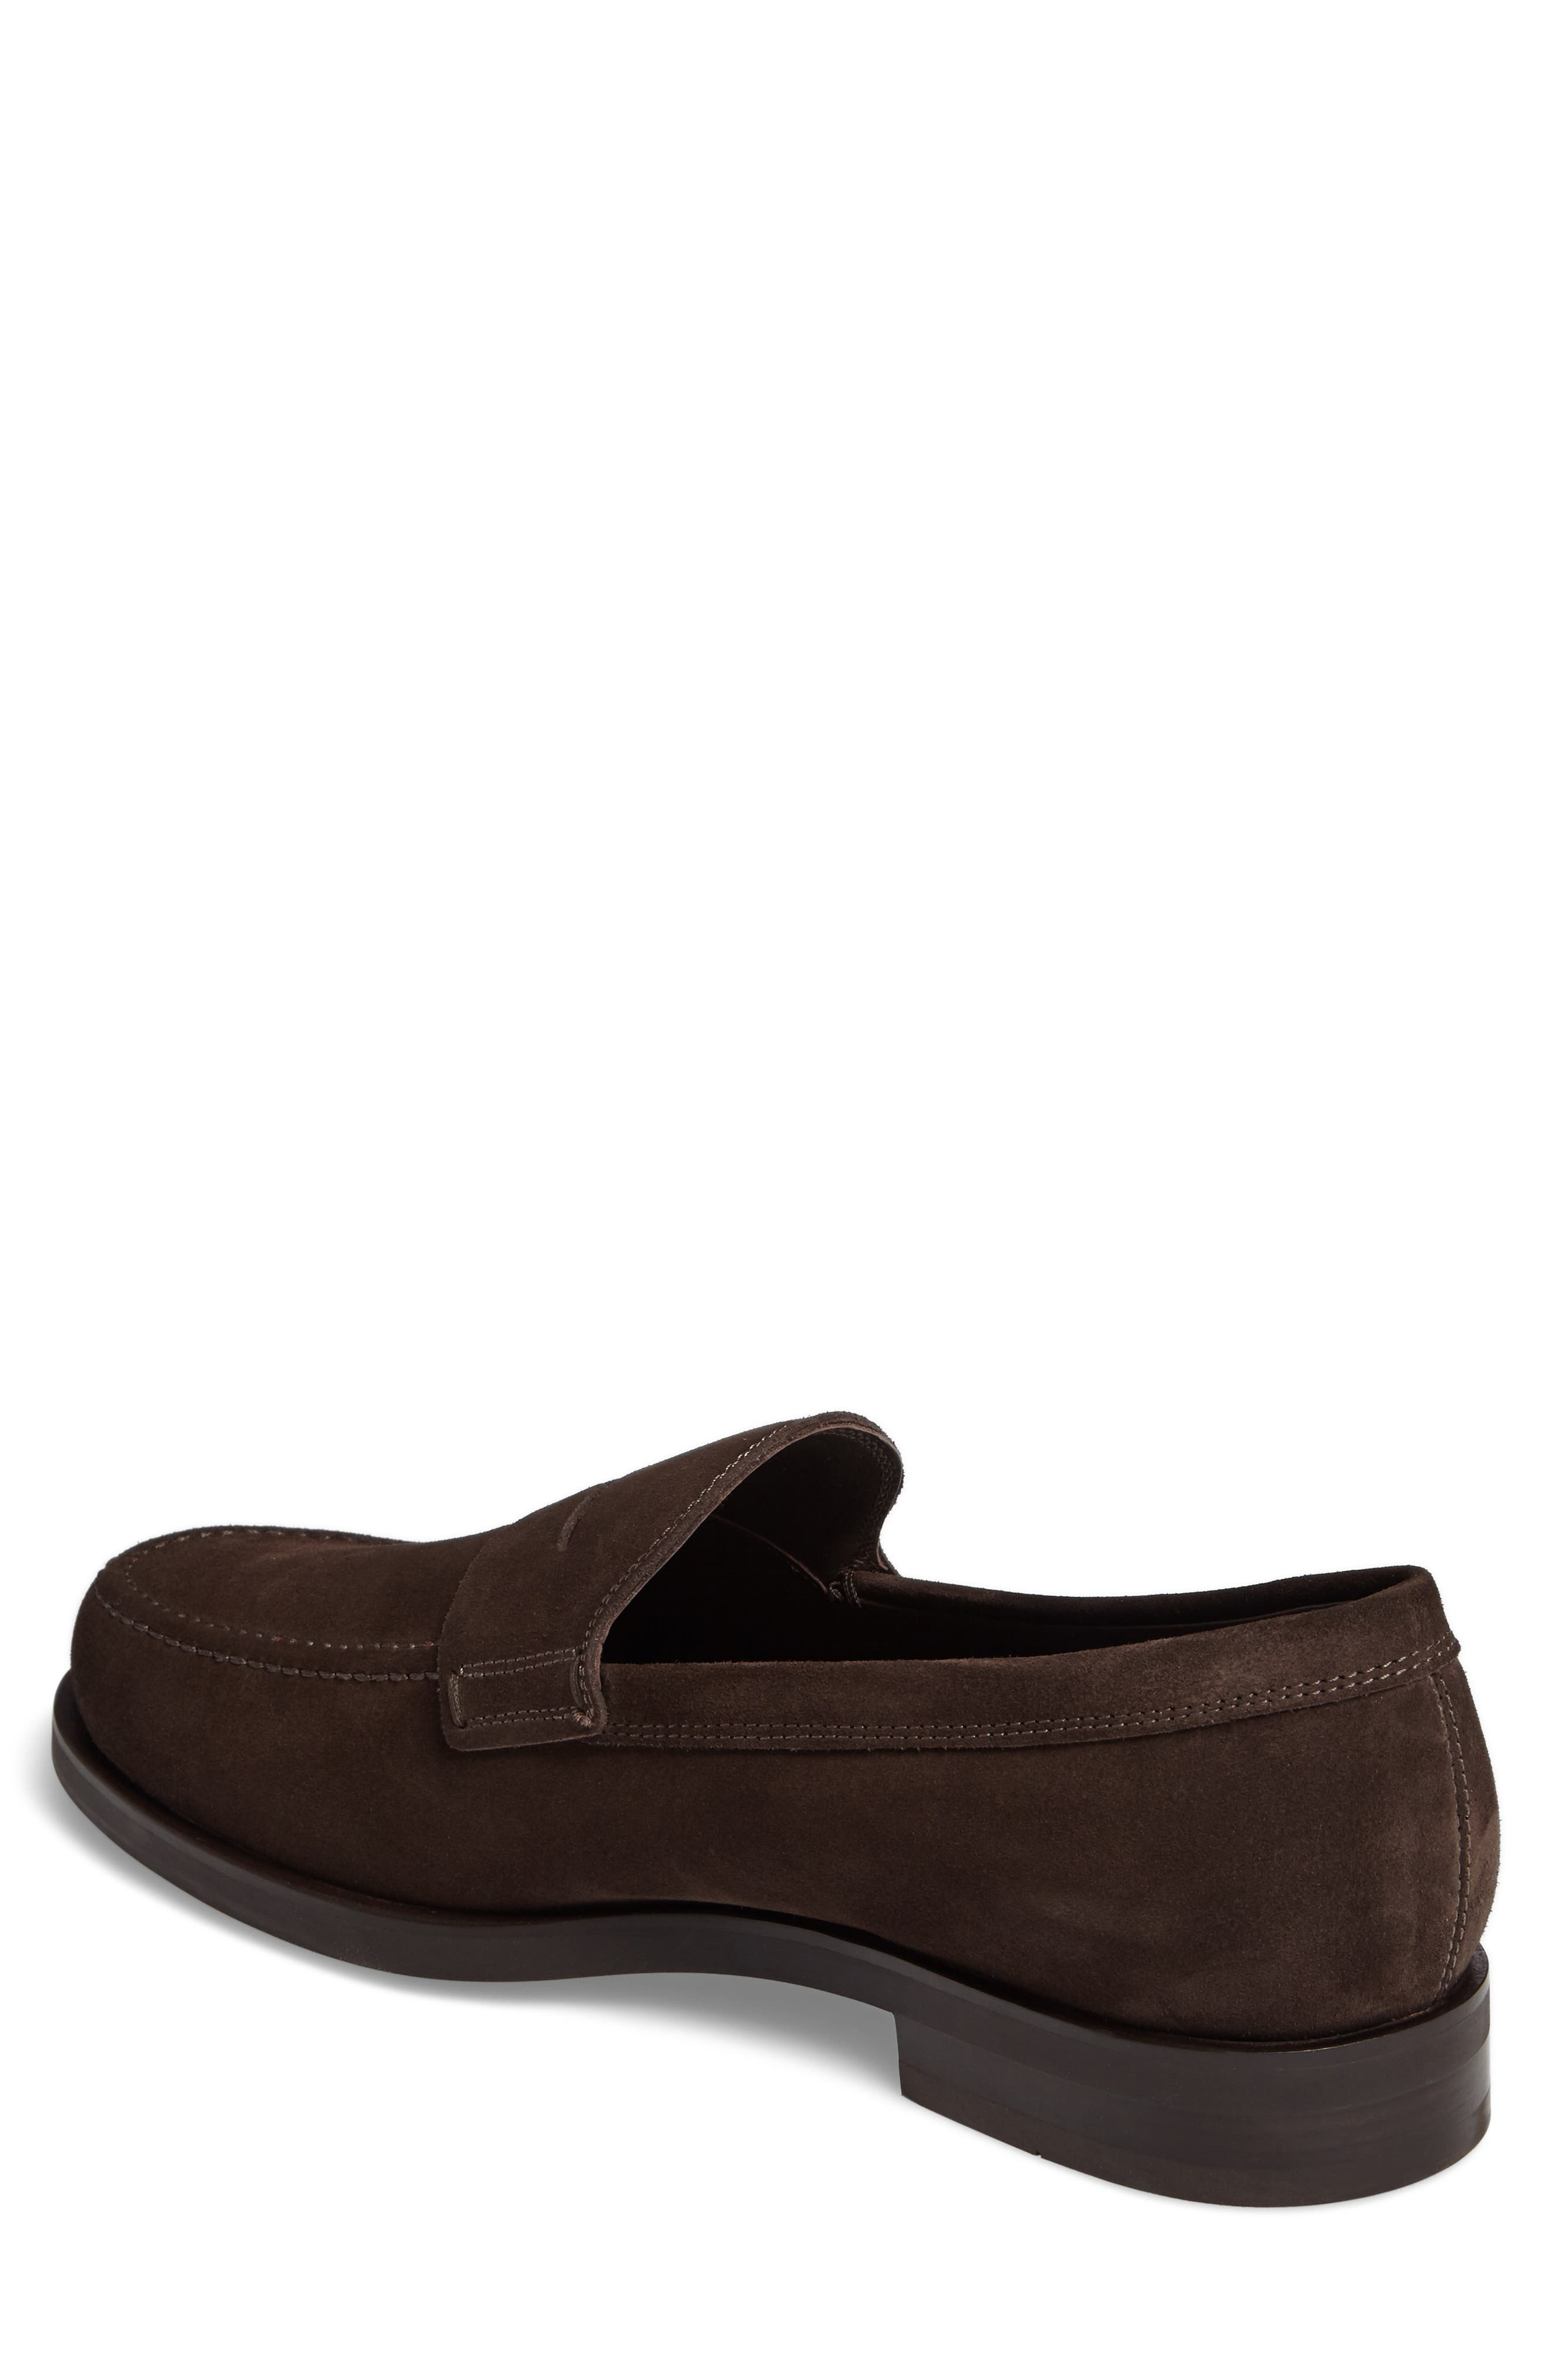 Alternate Image 2  - Tod's Penny Loafer (Men)